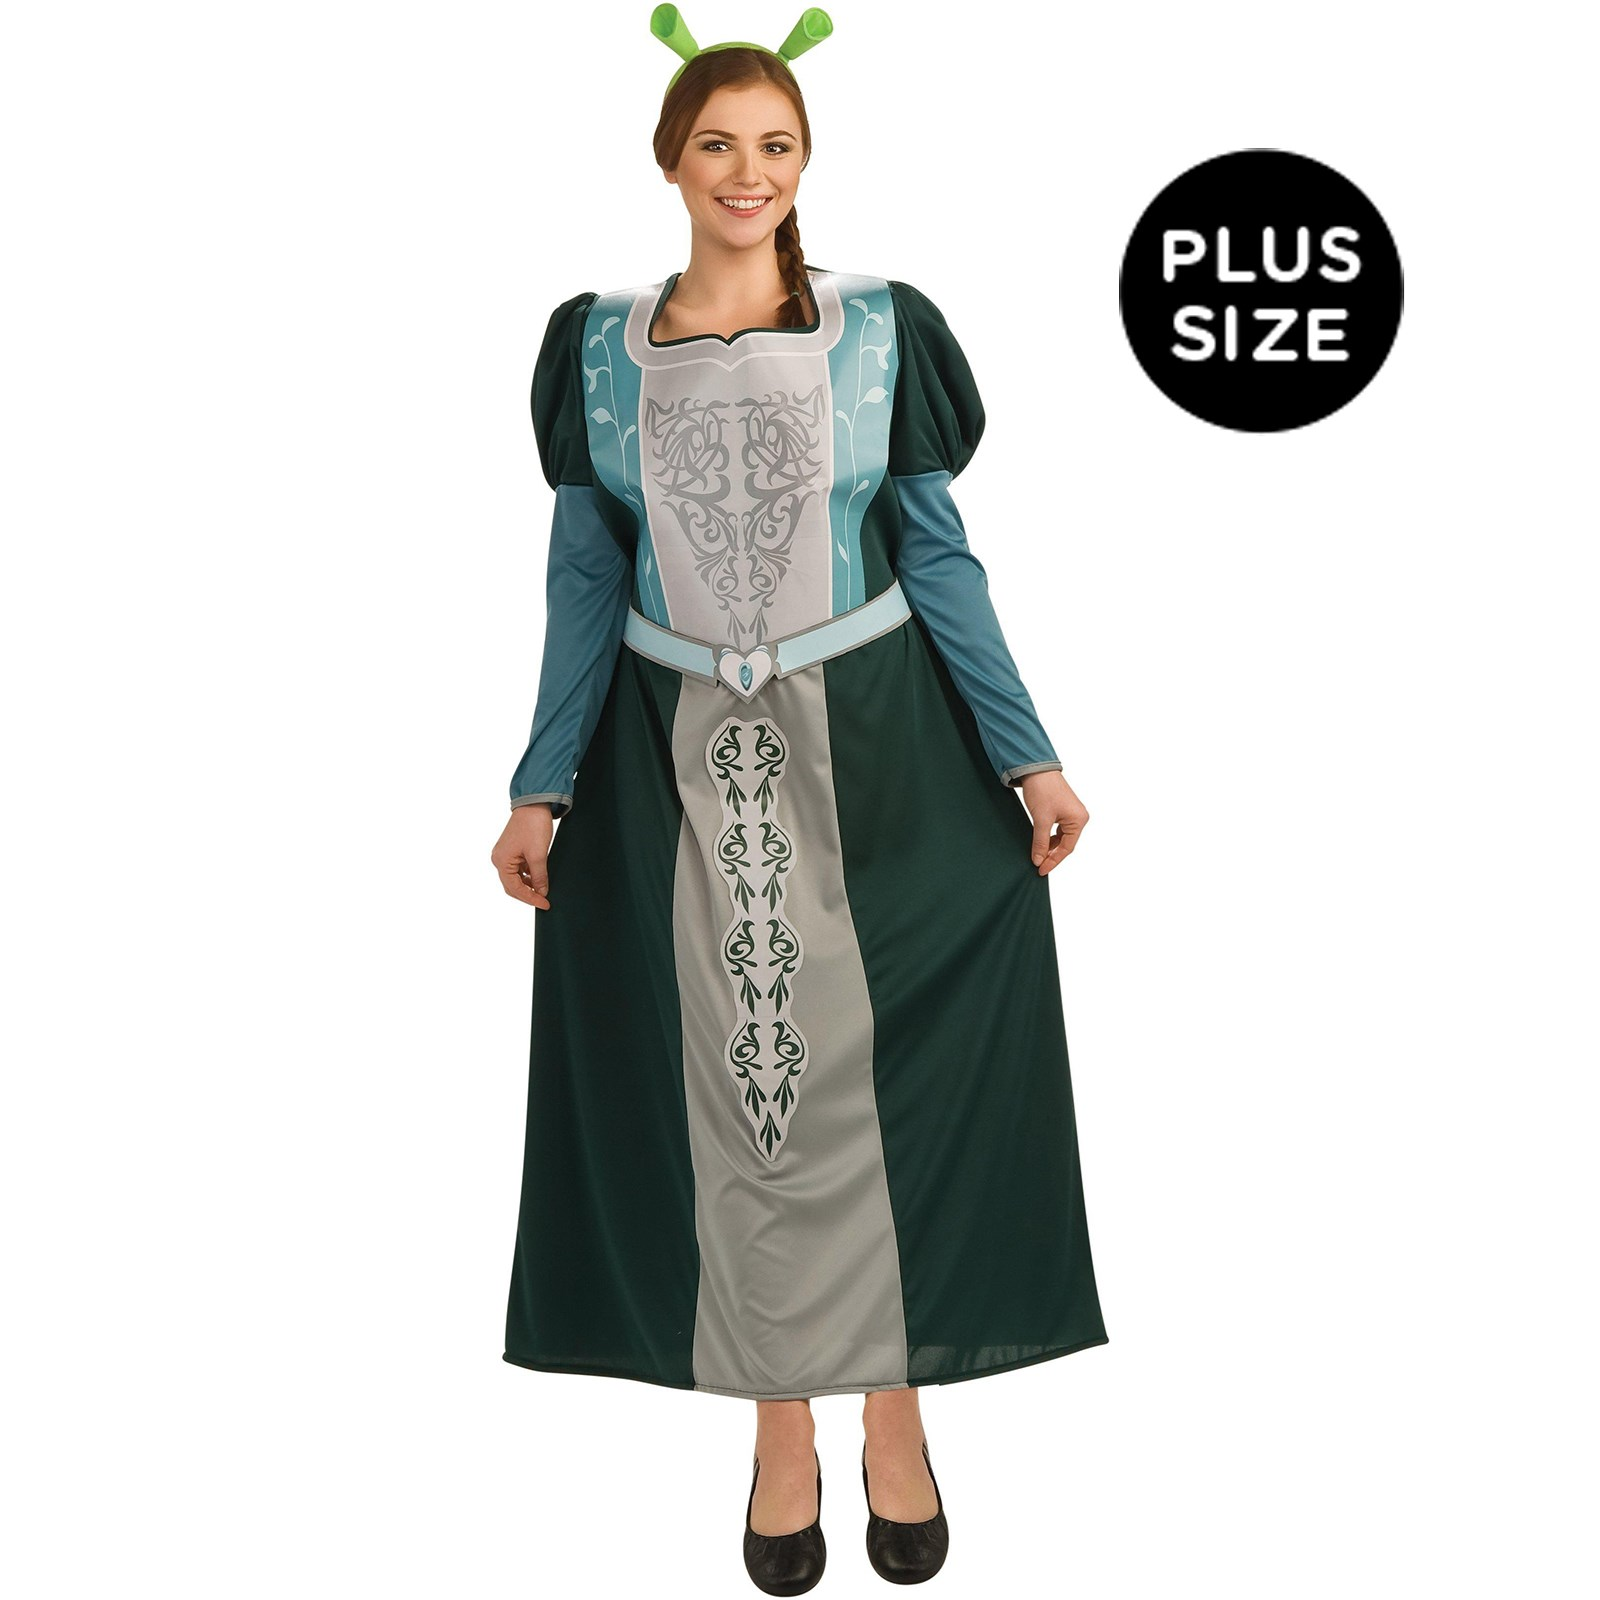 Adult Shrek Costumes 59